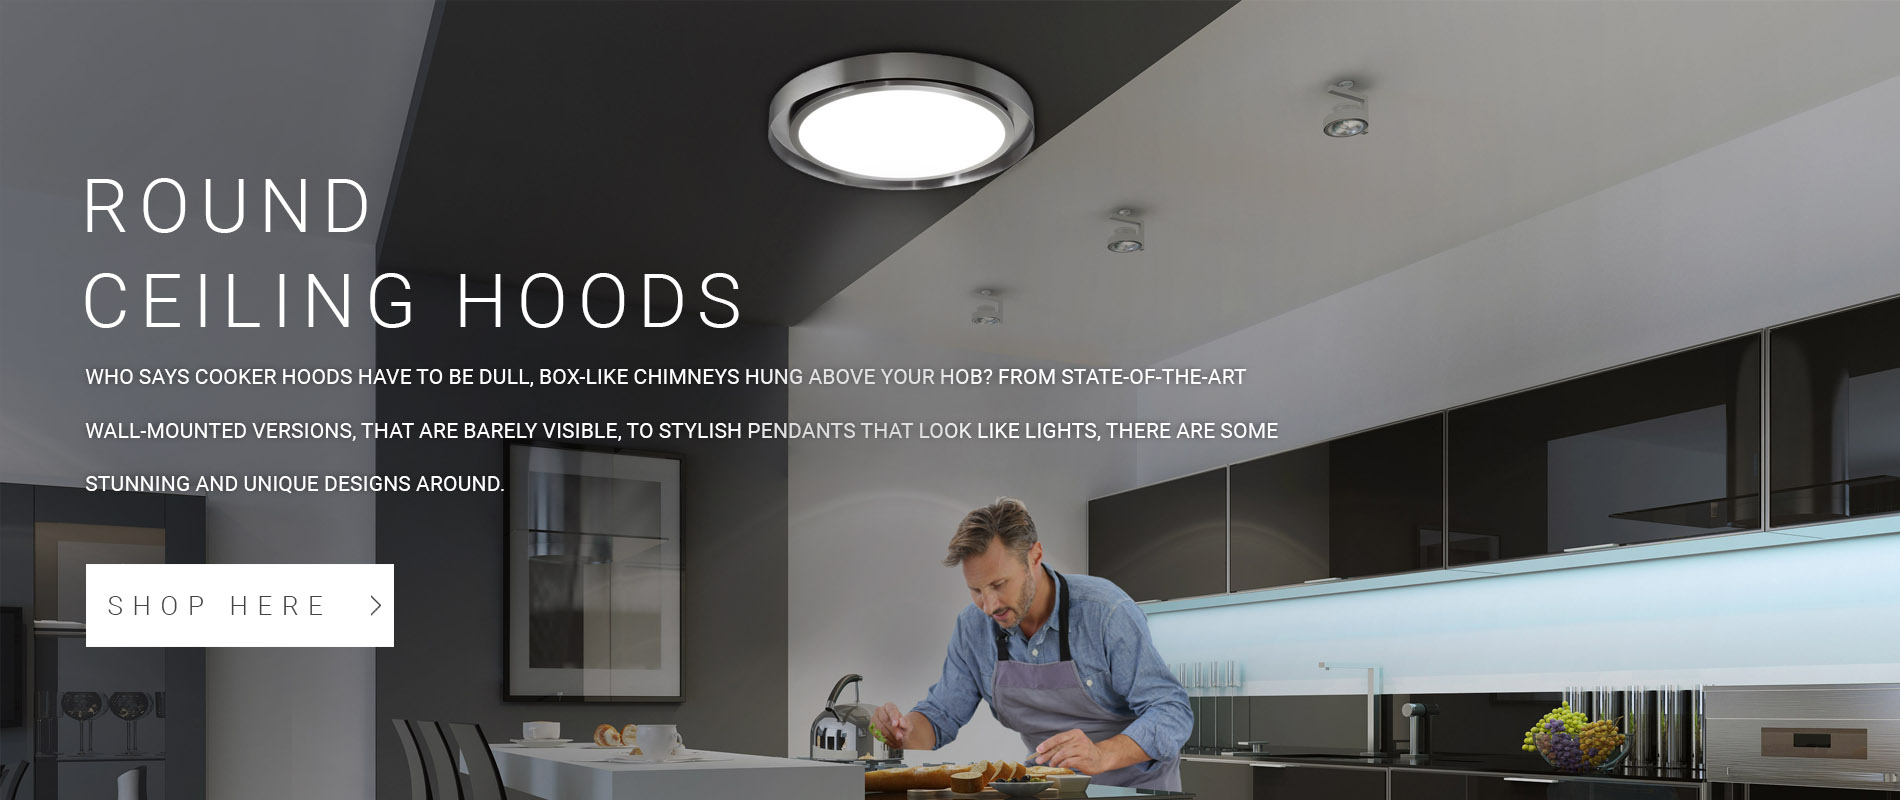 Round Ceiling Cooker Hoods